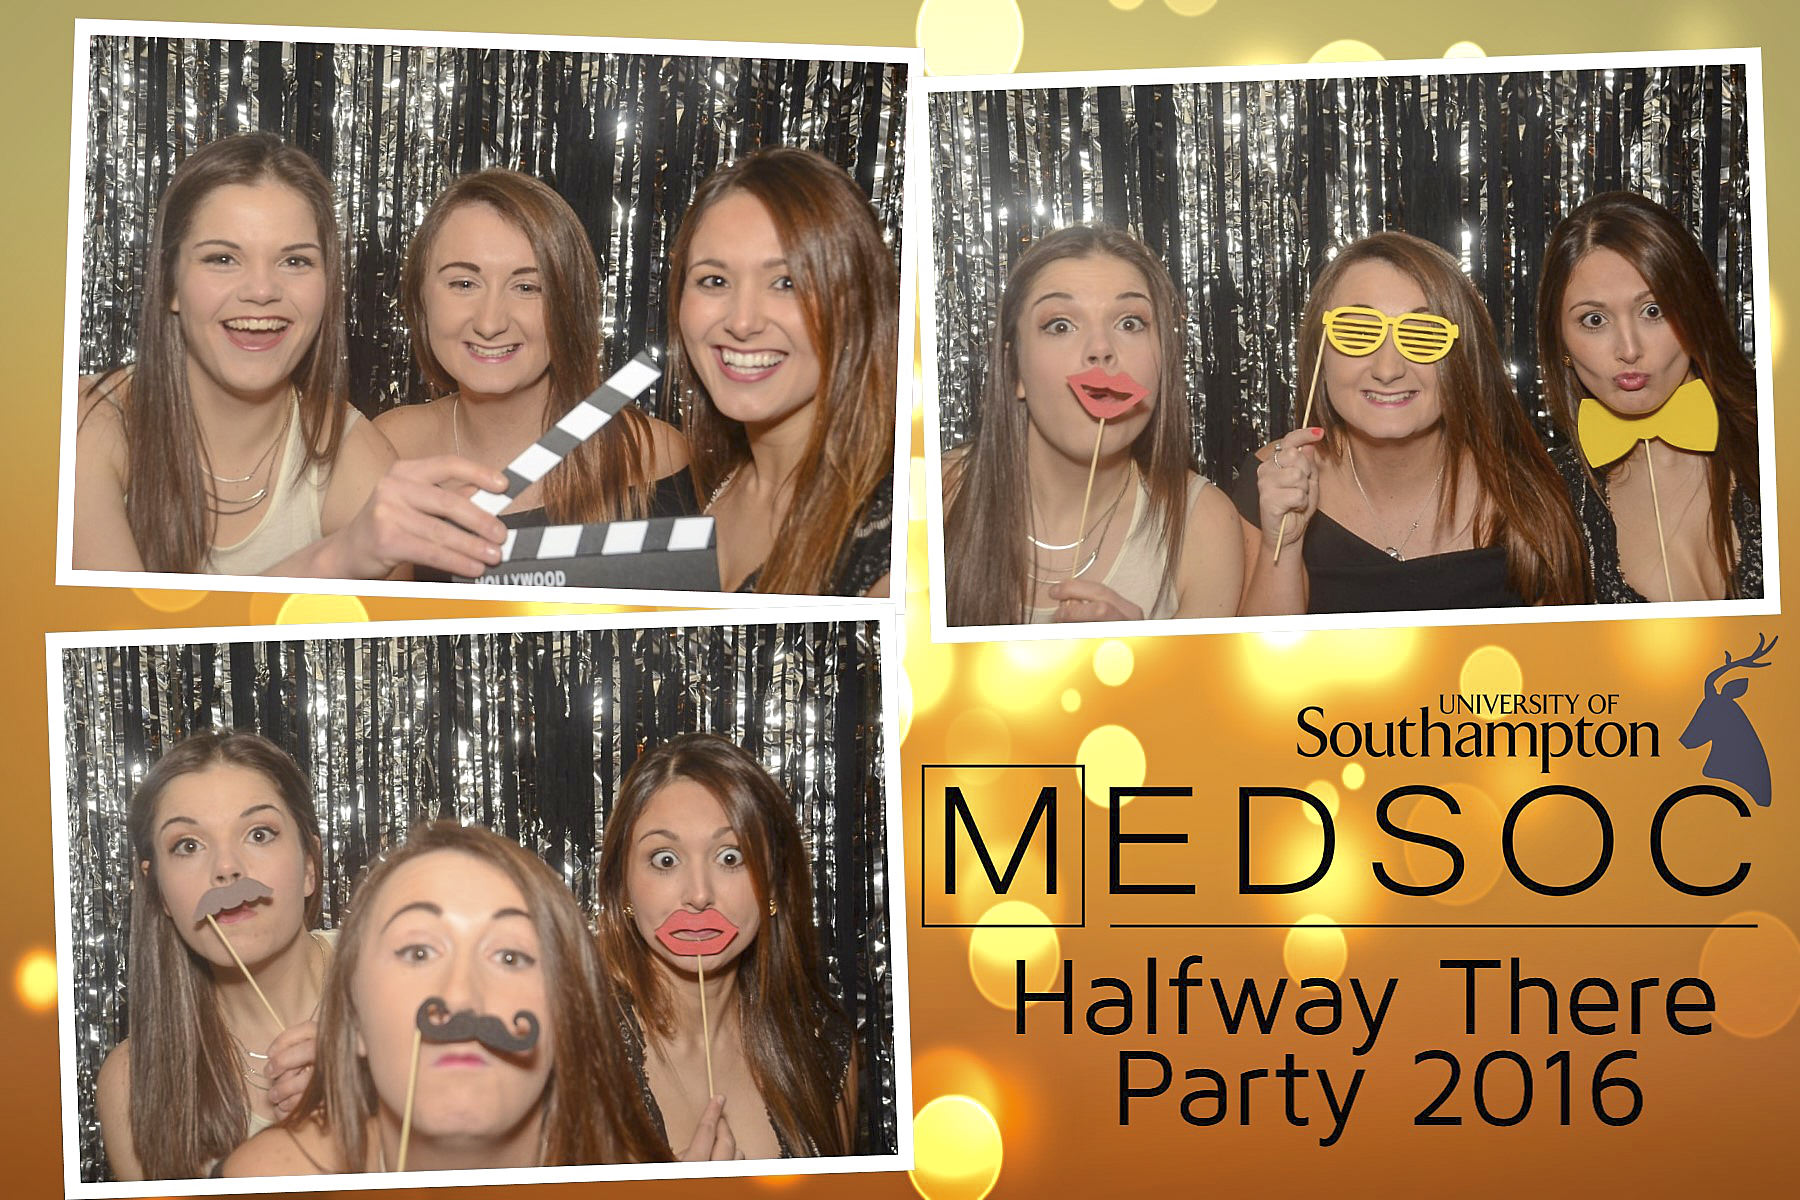 MedSoc Halfway There Party 2016 DS201526.jpg